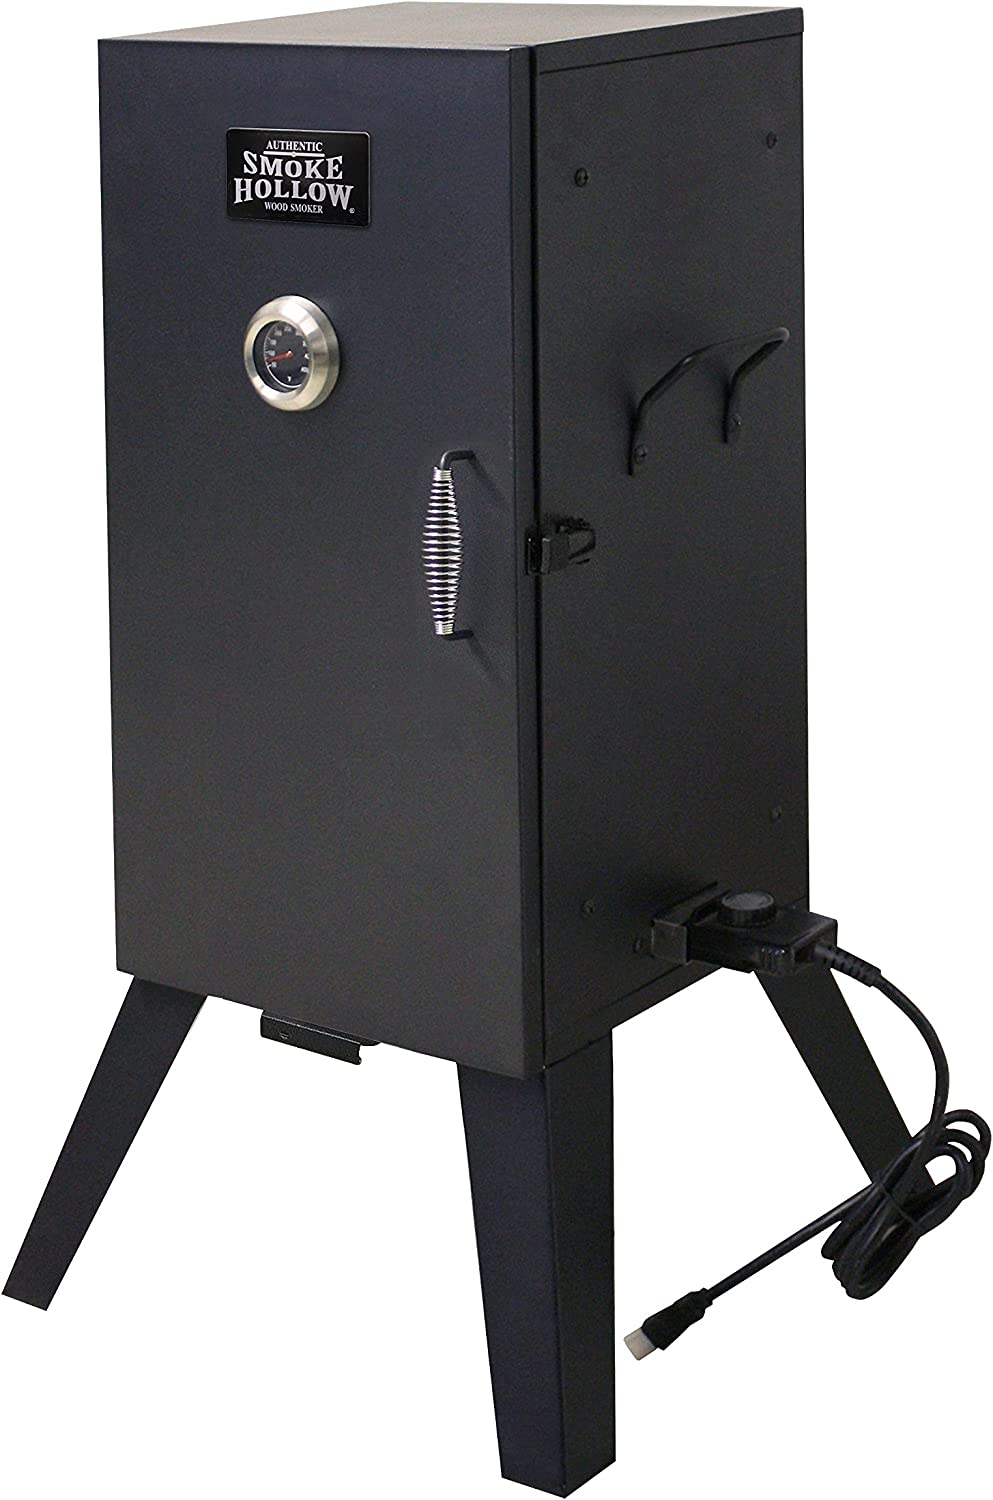 Smoke Hollow vertical electric smoker